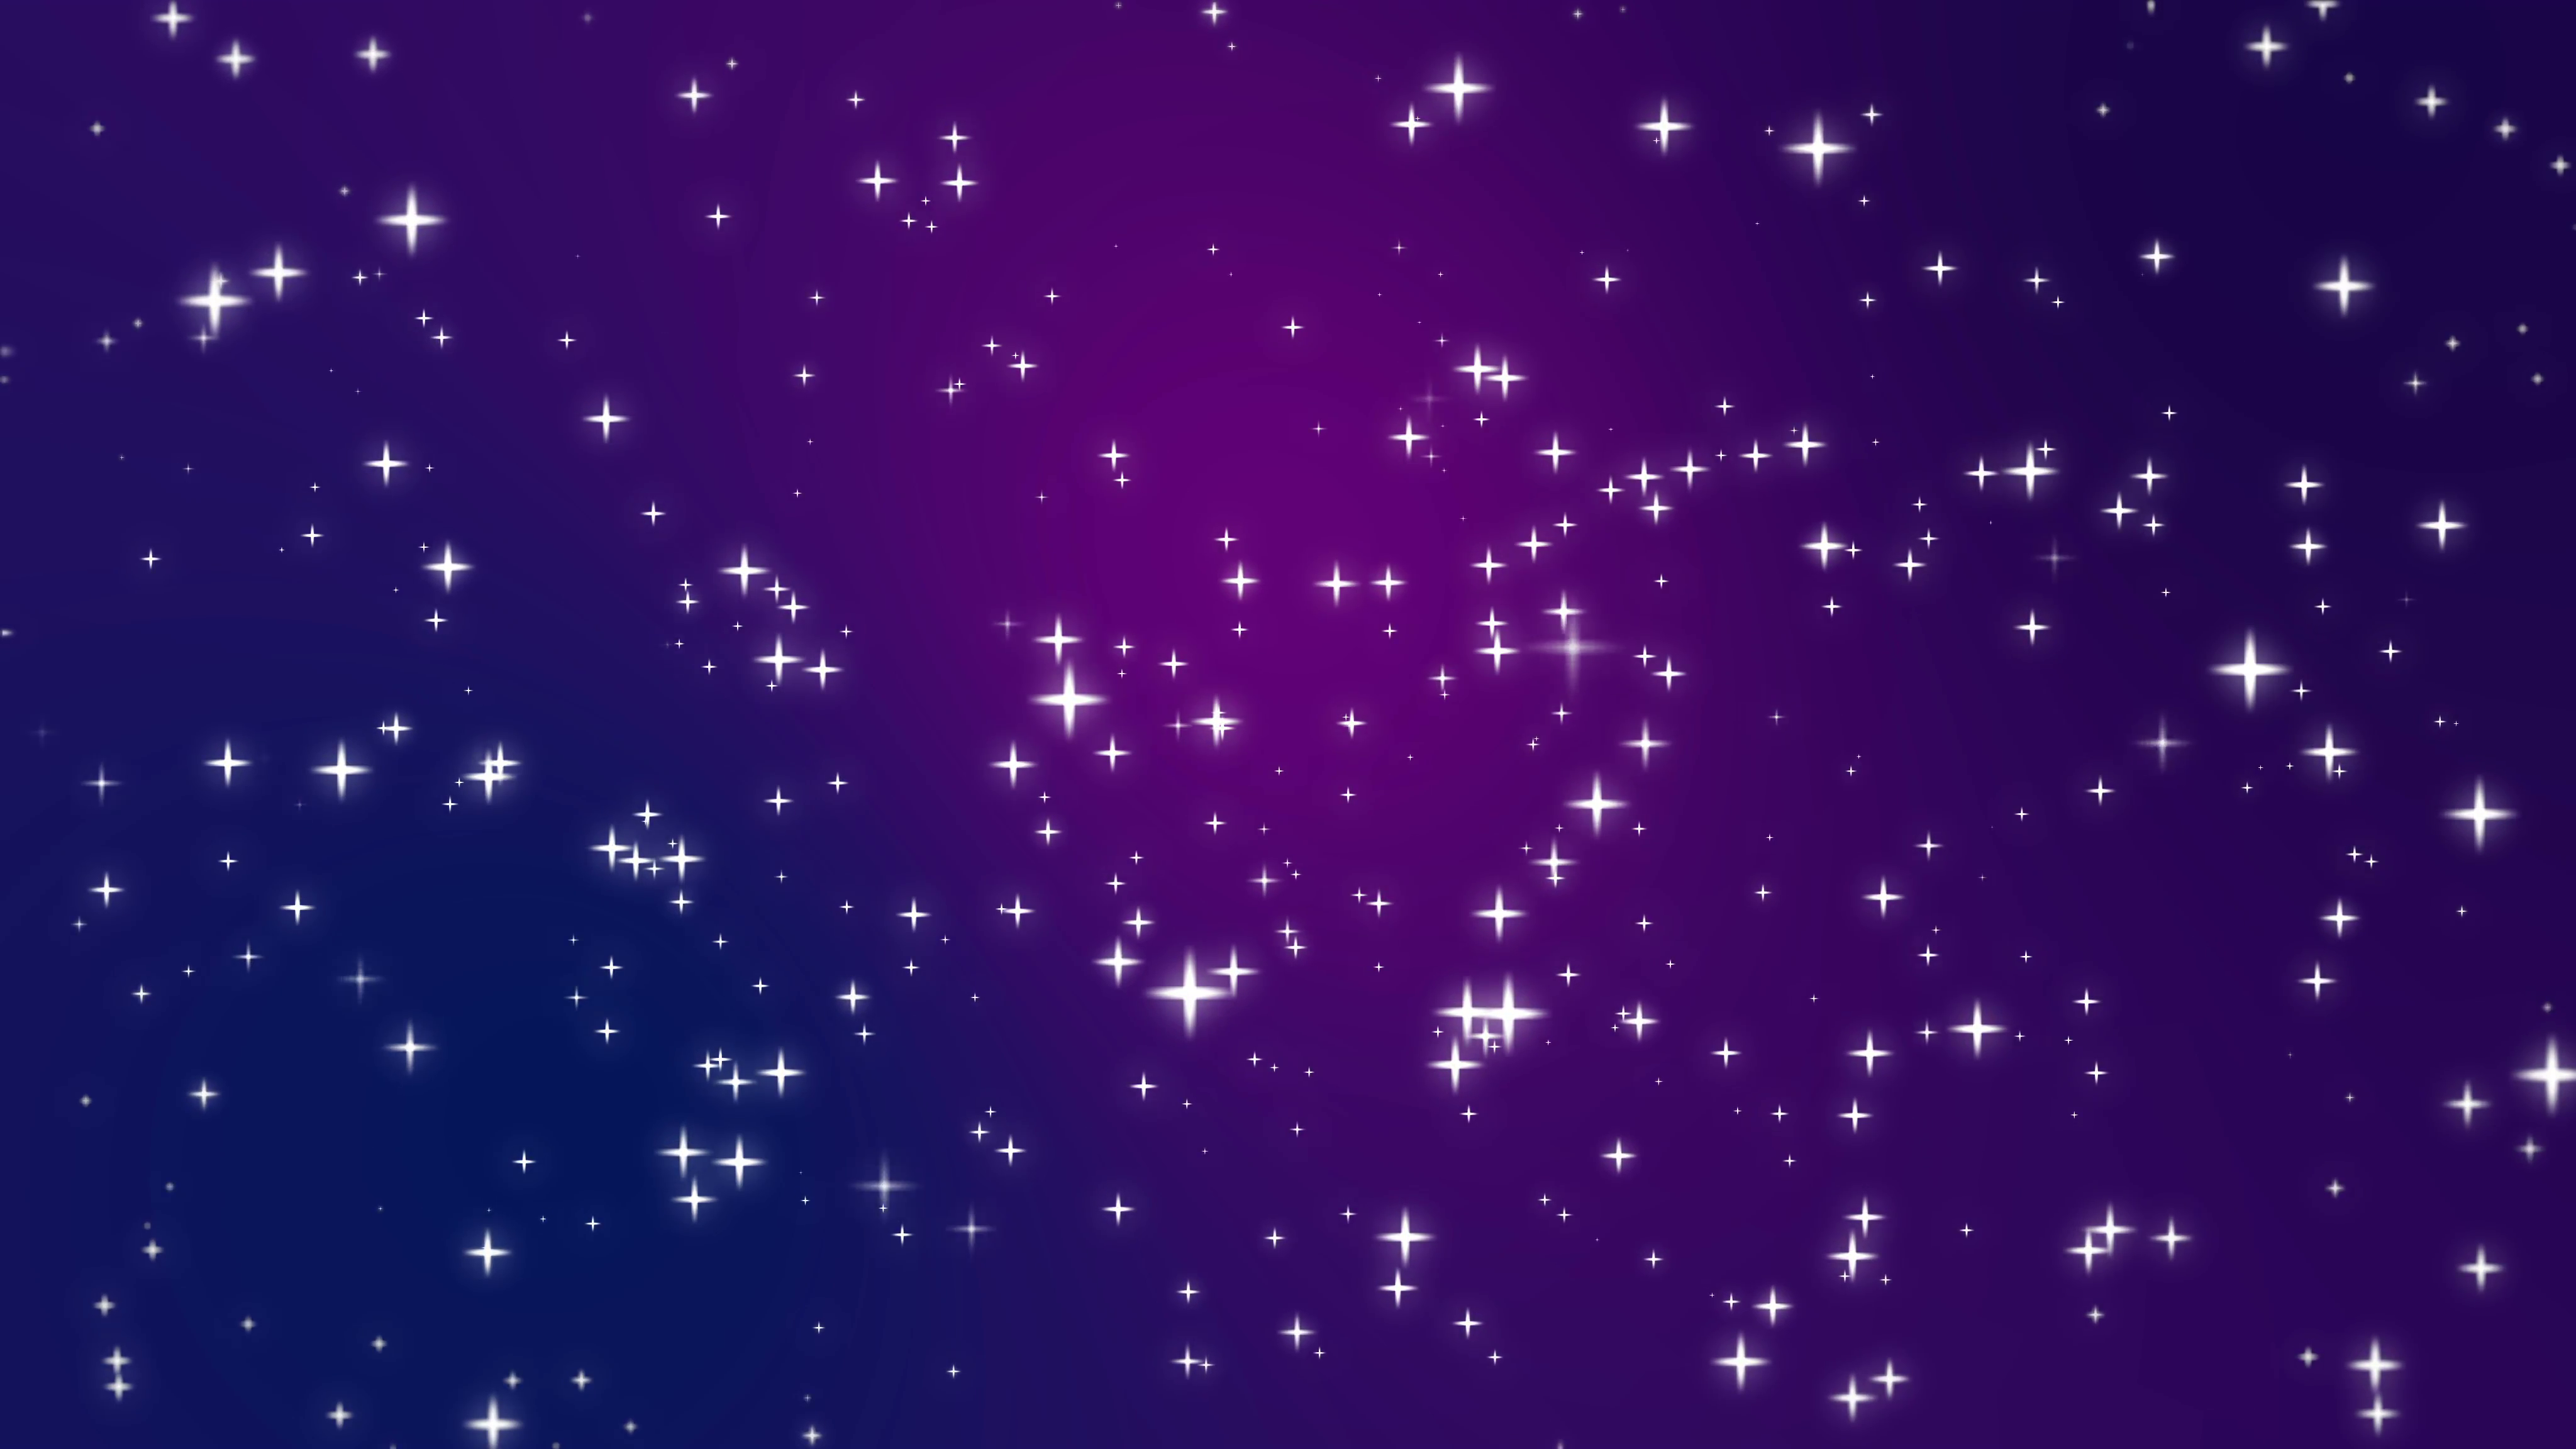 Sparkly light star particles moving across a purple blue pink gradient  background imitating night sky full - Purple Star PNG HD